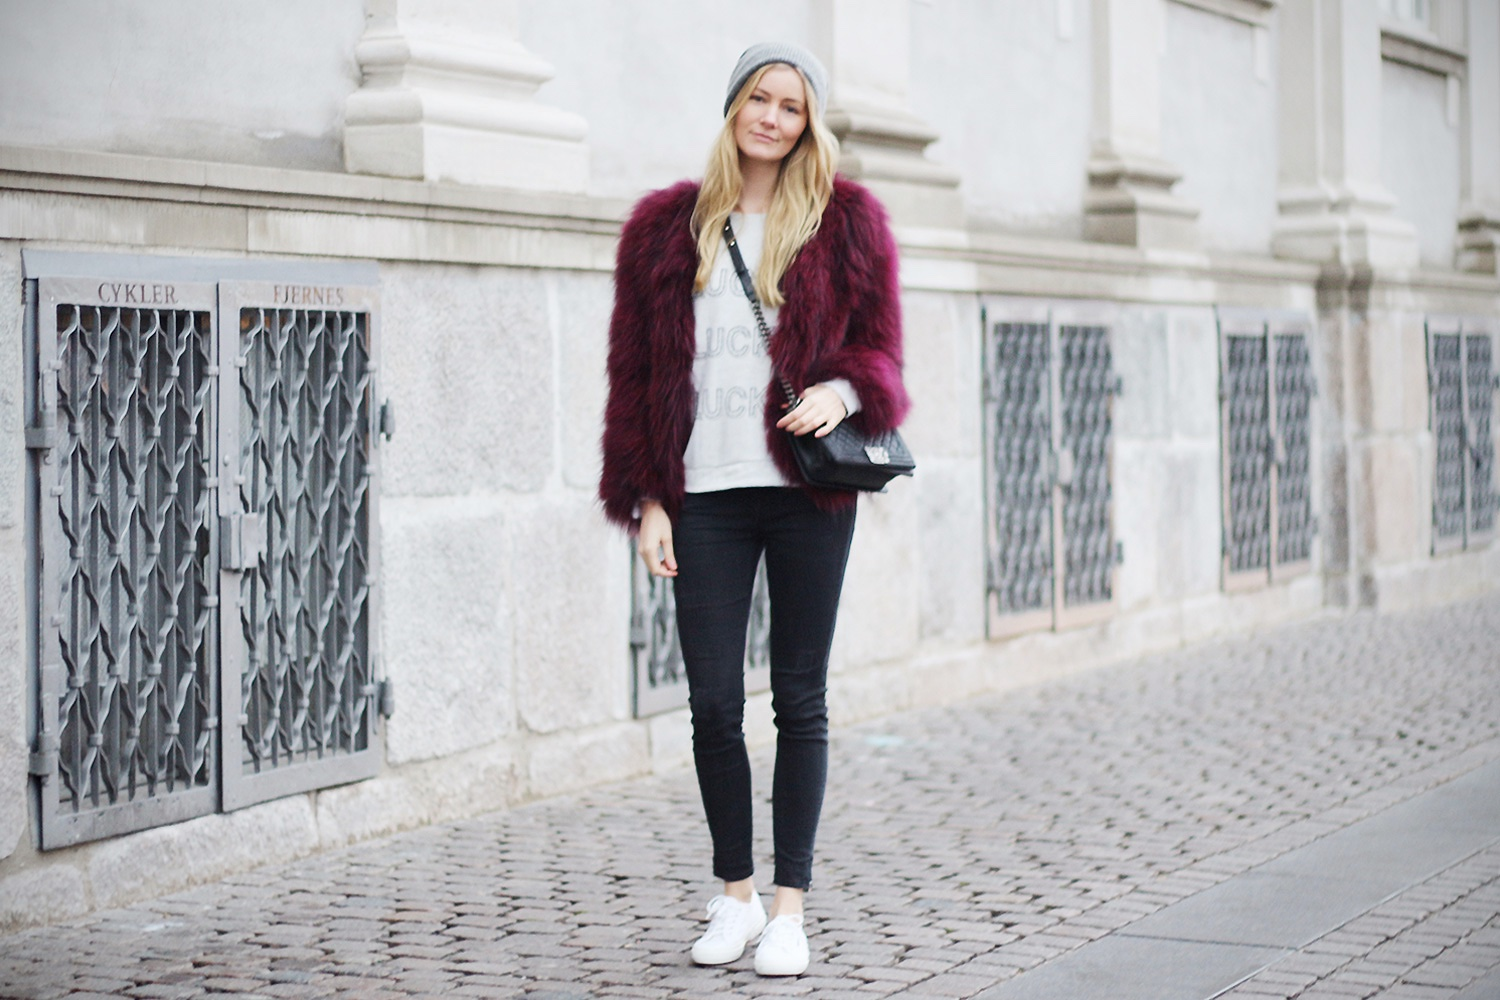 fashion-blogger-copenhagen@2x